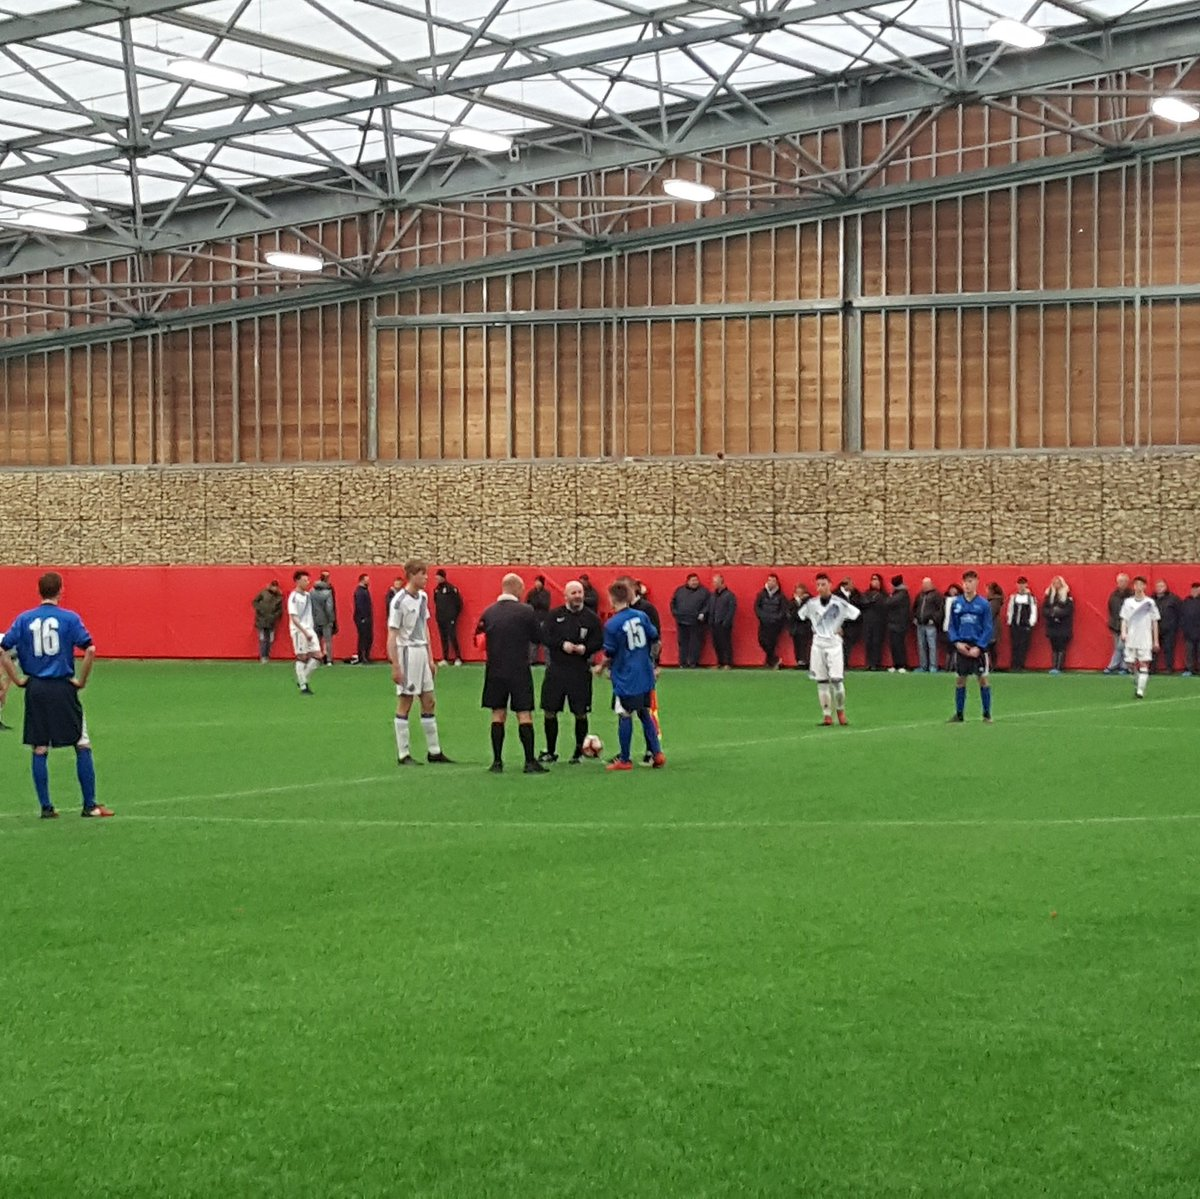 Fixture today against @SunderlandAFC. Good performance from the lads. #c4sfam #c4sacademy #platform #Pathways https://t.co/Reb7Dw8edV